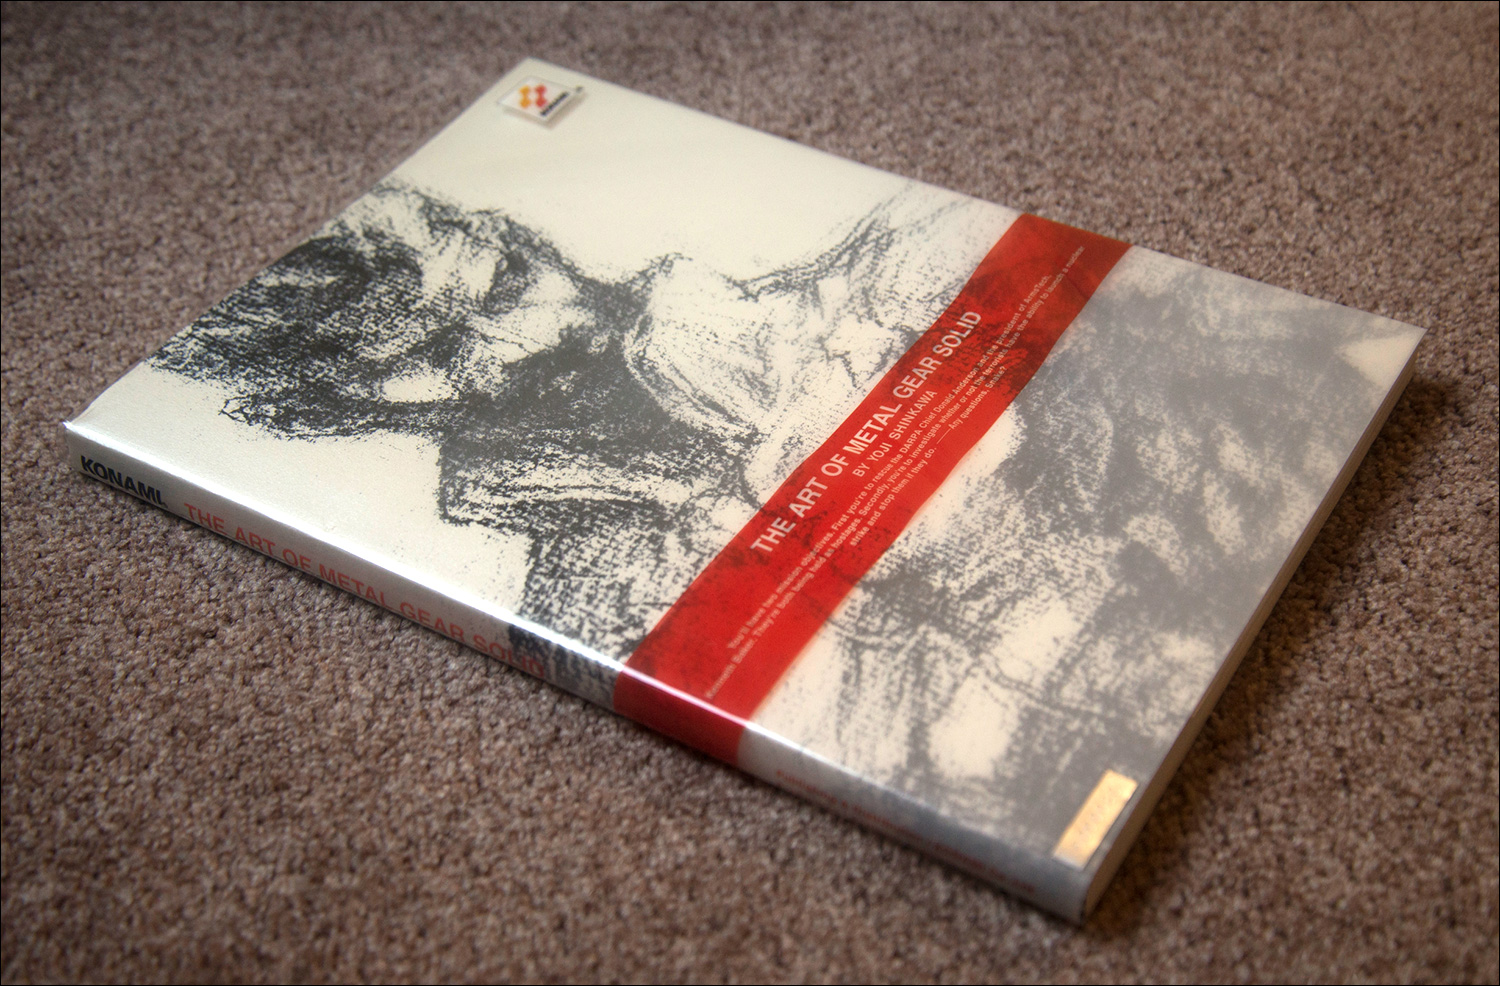 The-Art-of-Metal-Gear-Solid-Book